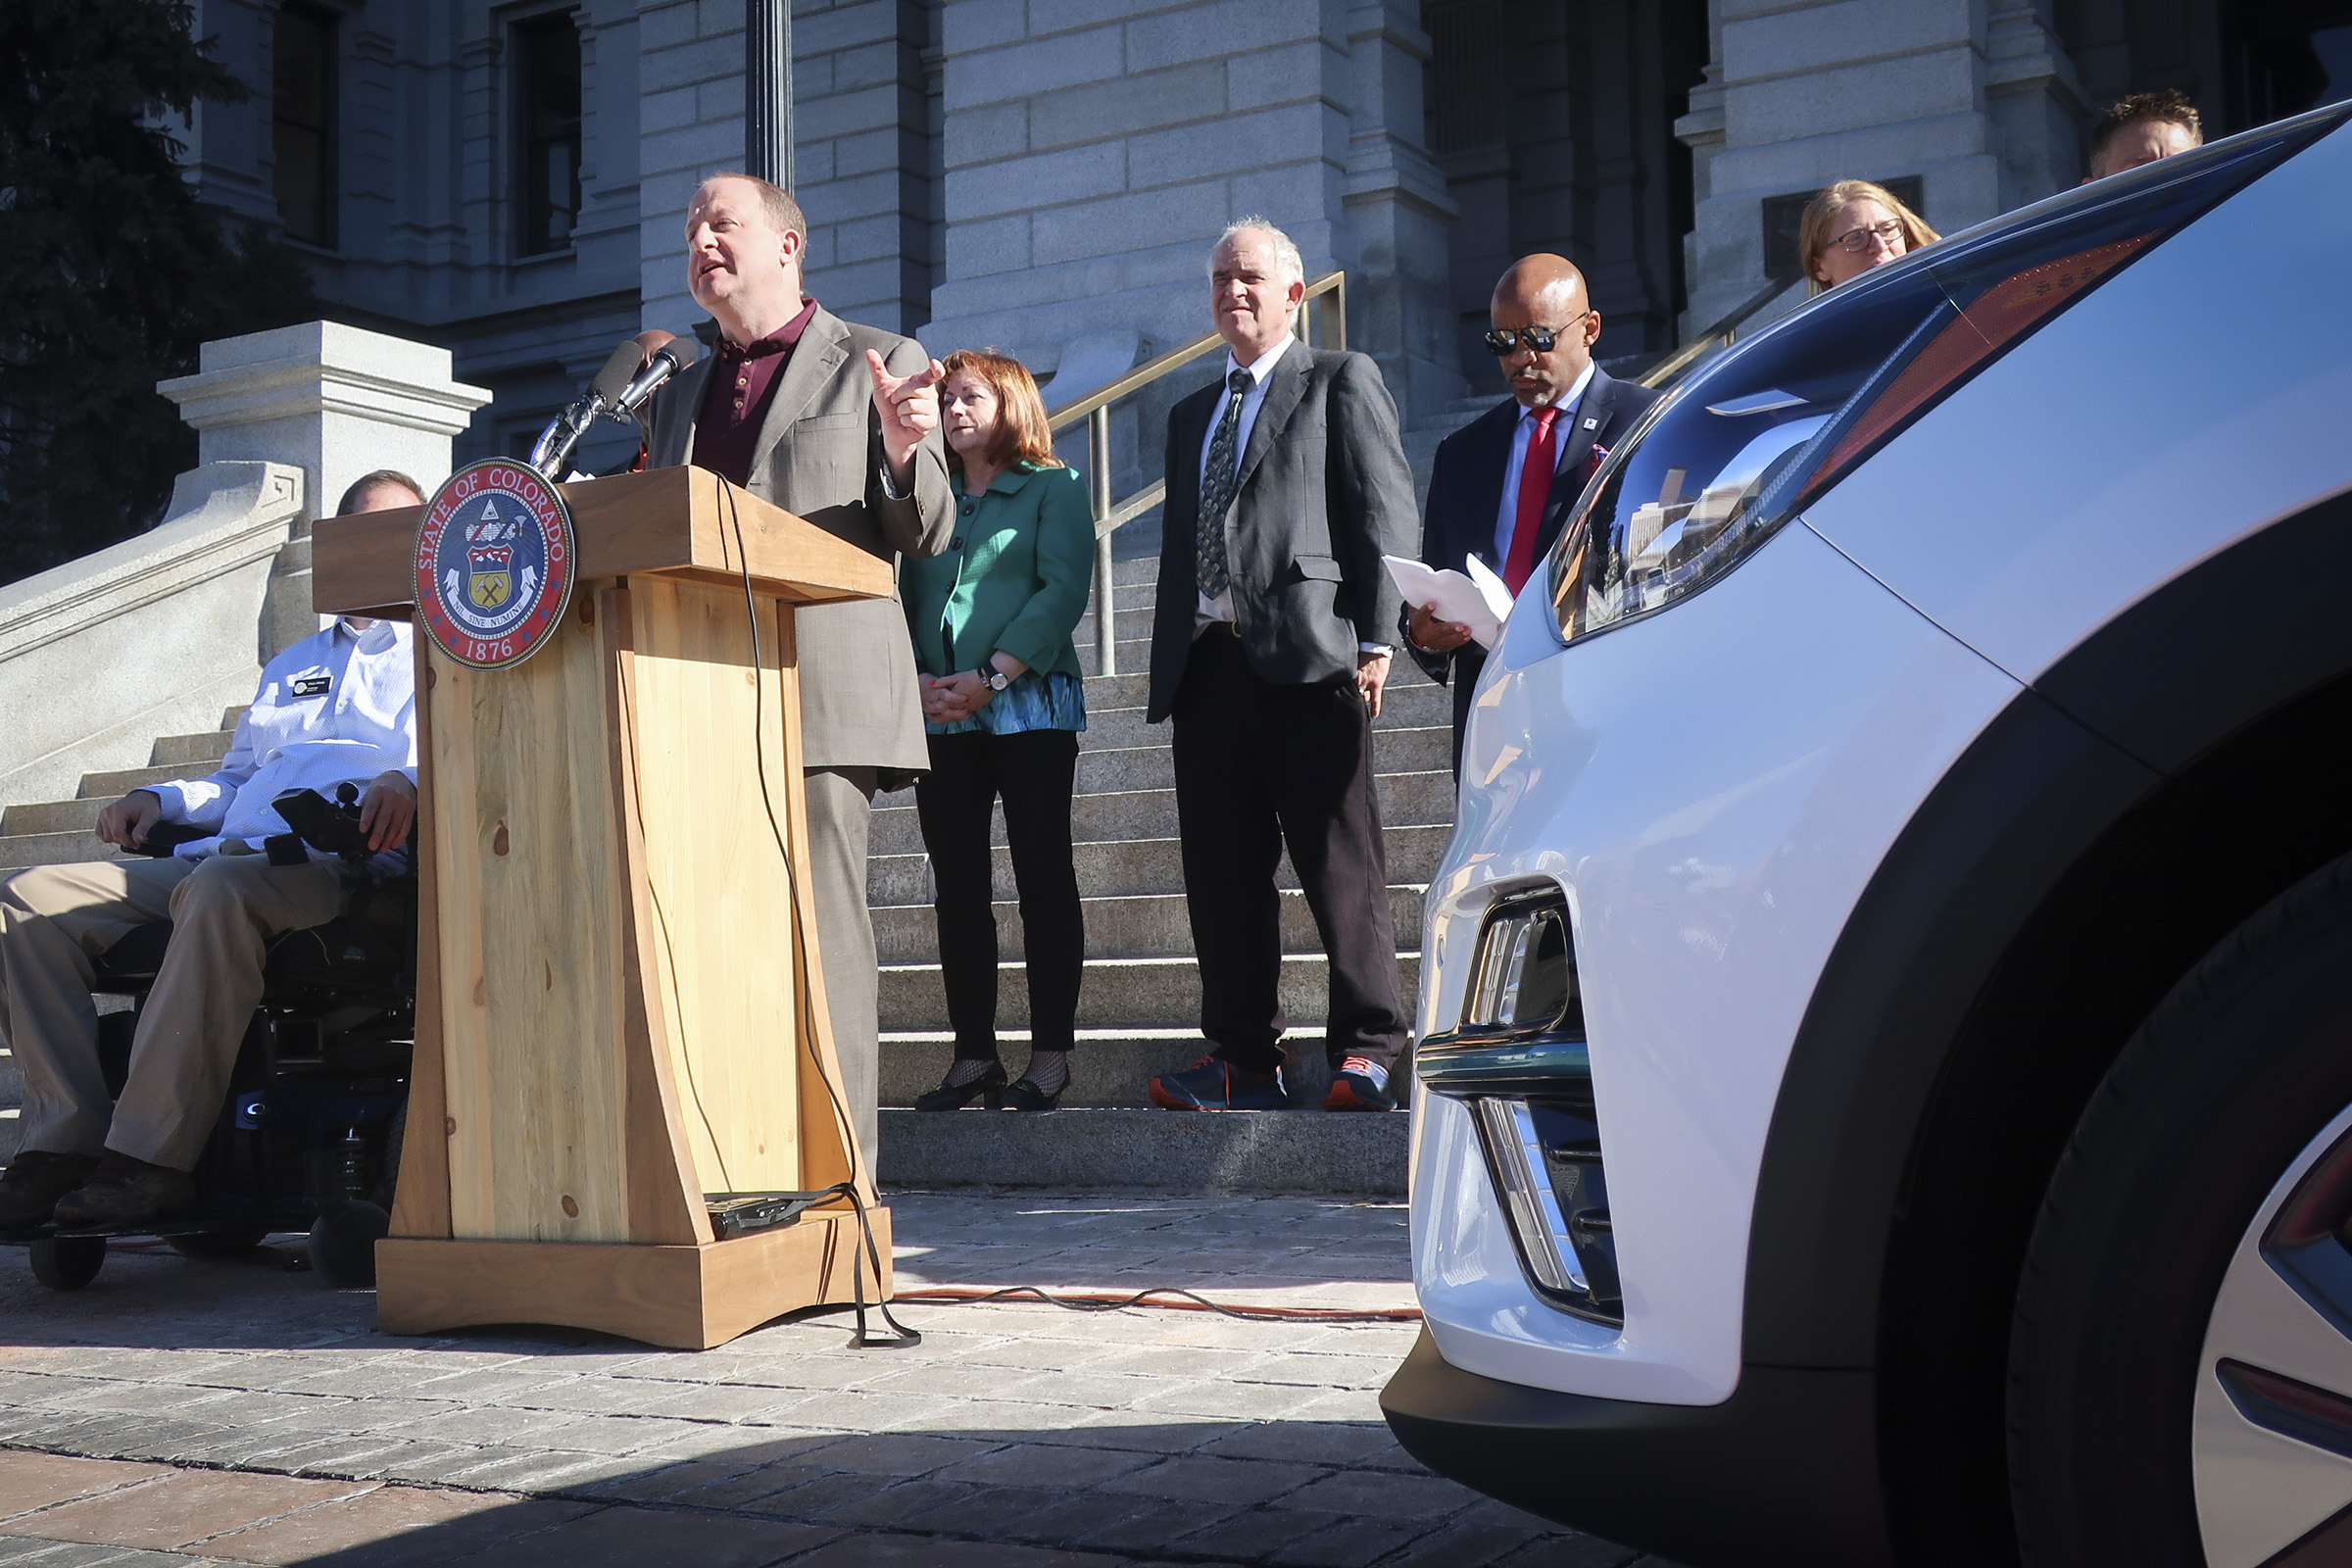 Gov. Jared Polis speaks at a press conference where ride-hailing company Lyft announced it would add 200 electric vehicles to its fleet in Denver on Thursday, Nov. 14, 2019.